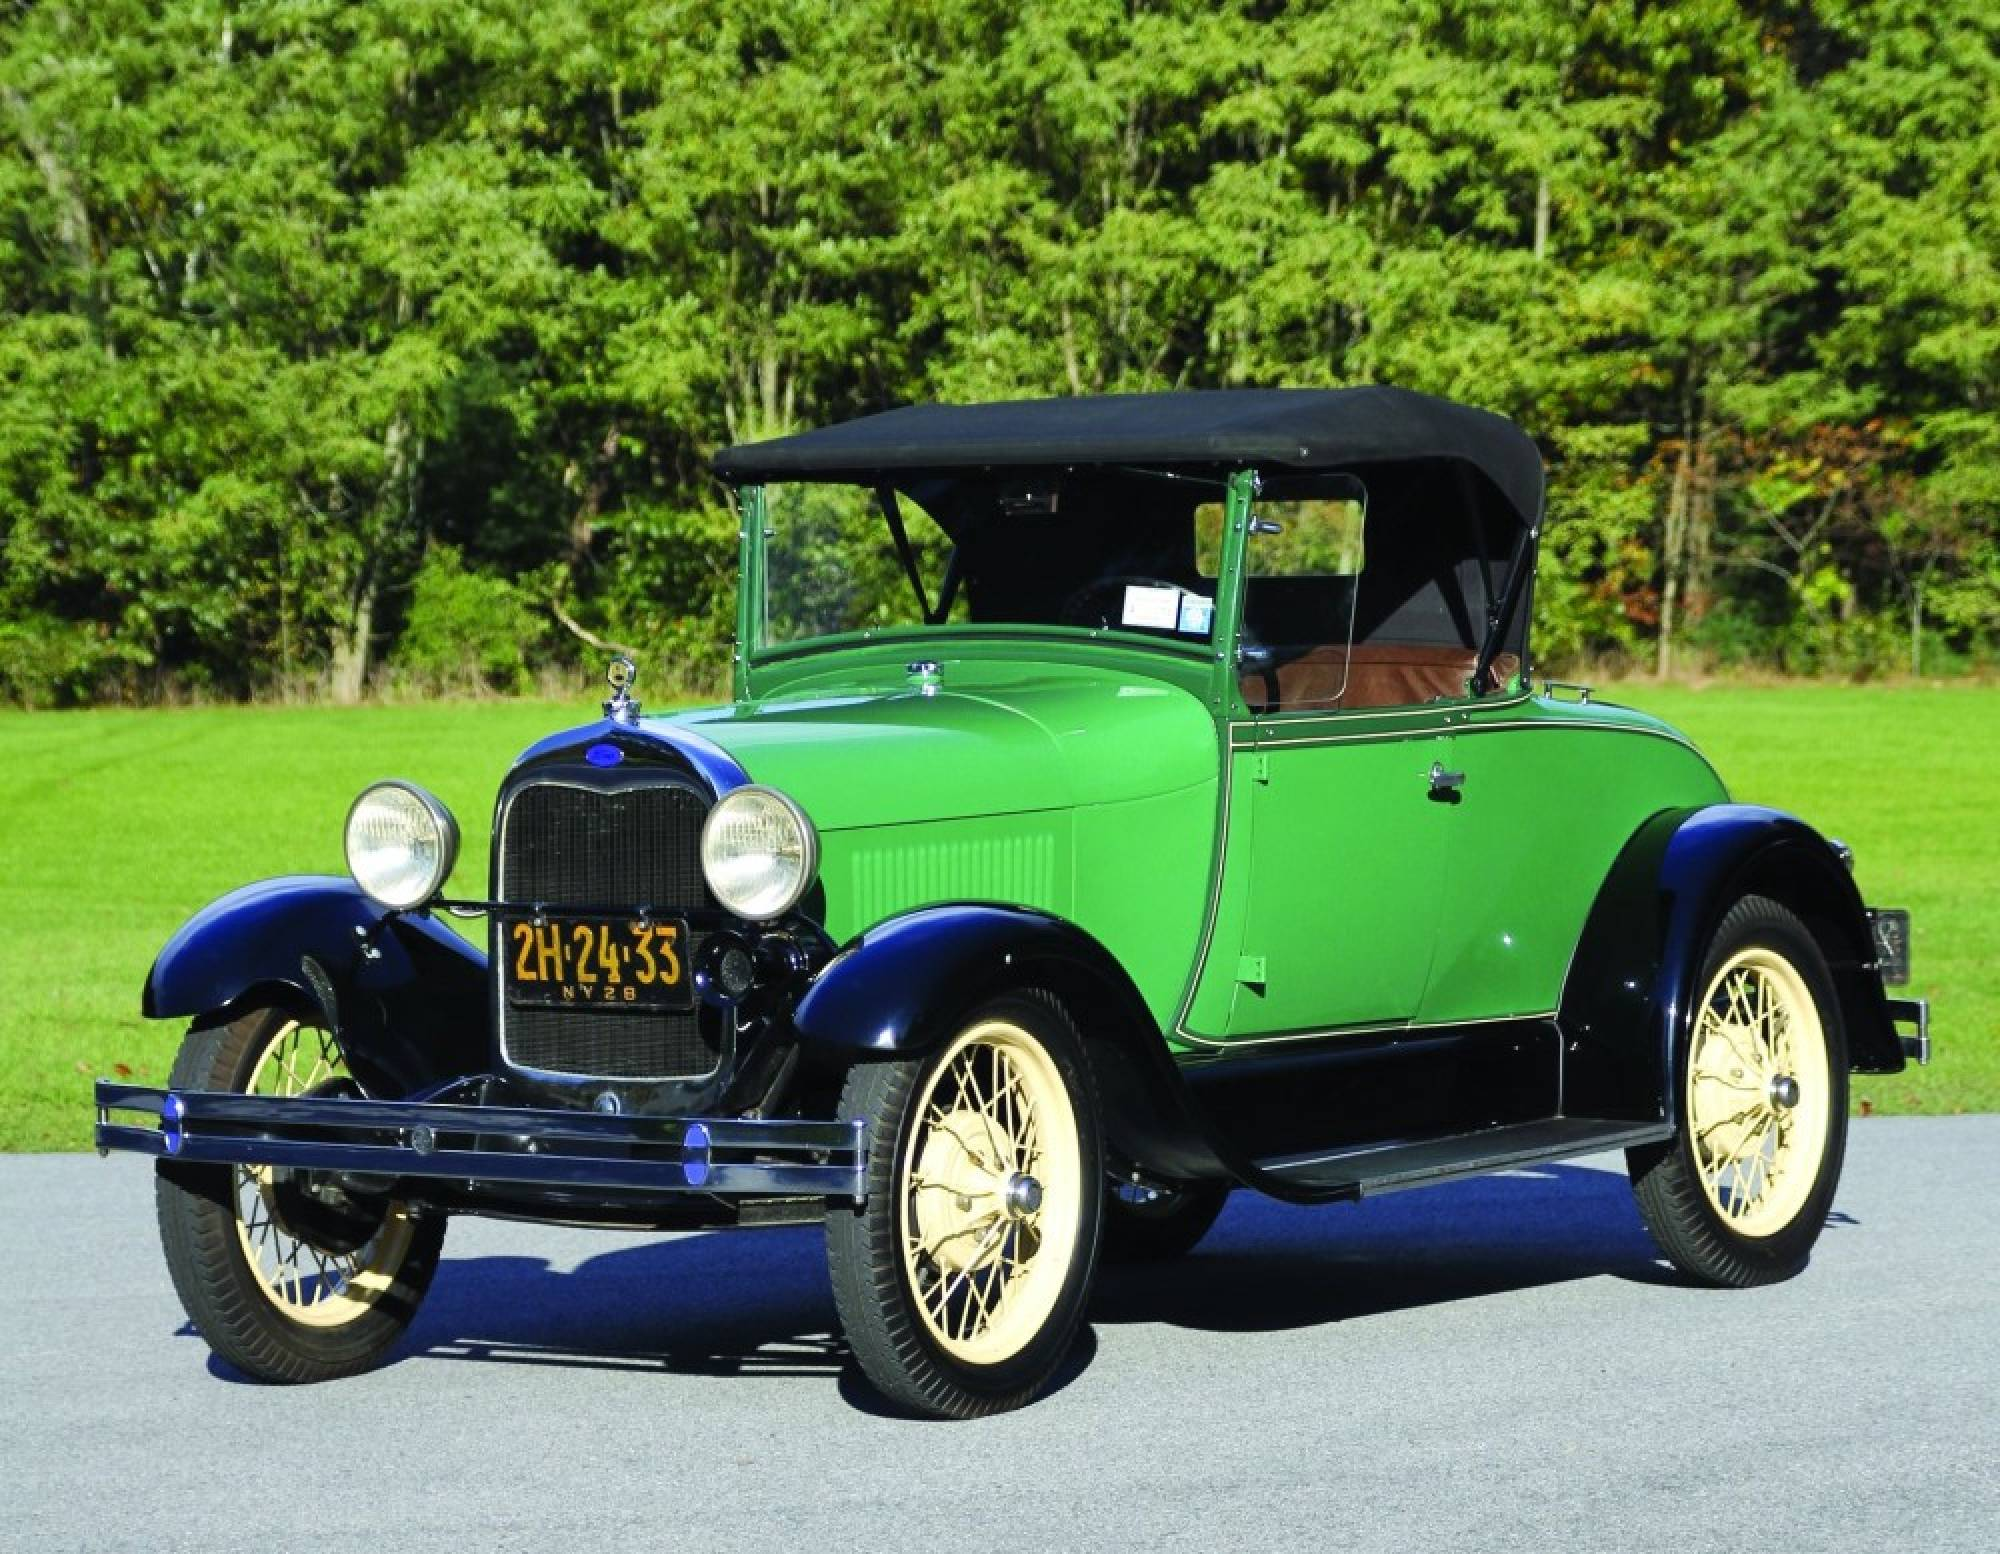 1928 Ford Model A Pics, Vehicles Collection